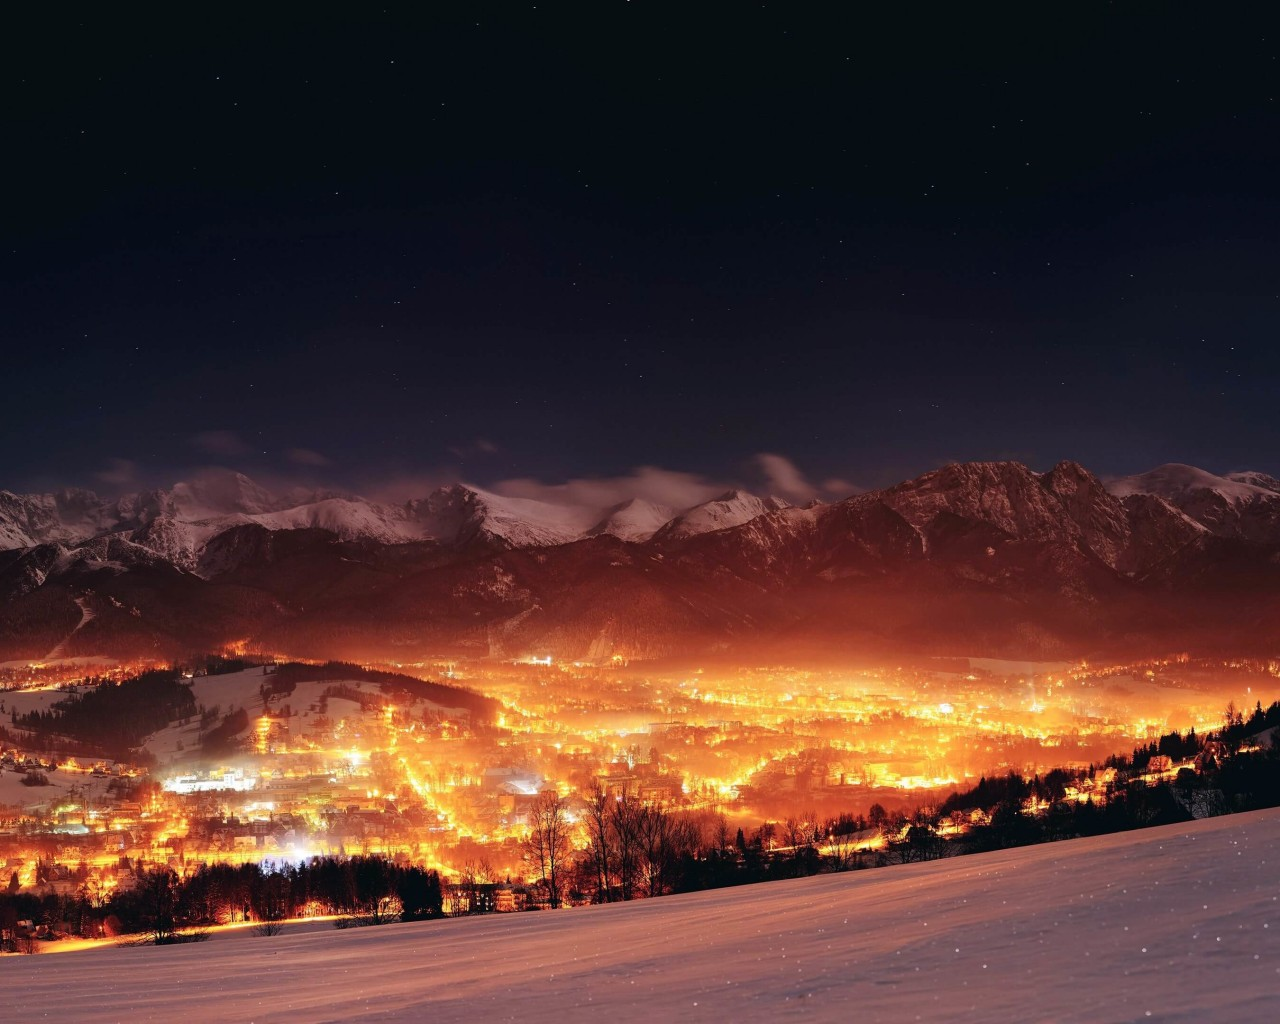 Zakopane City At Night - Poland Wallpaper for Desktop 1280x1024